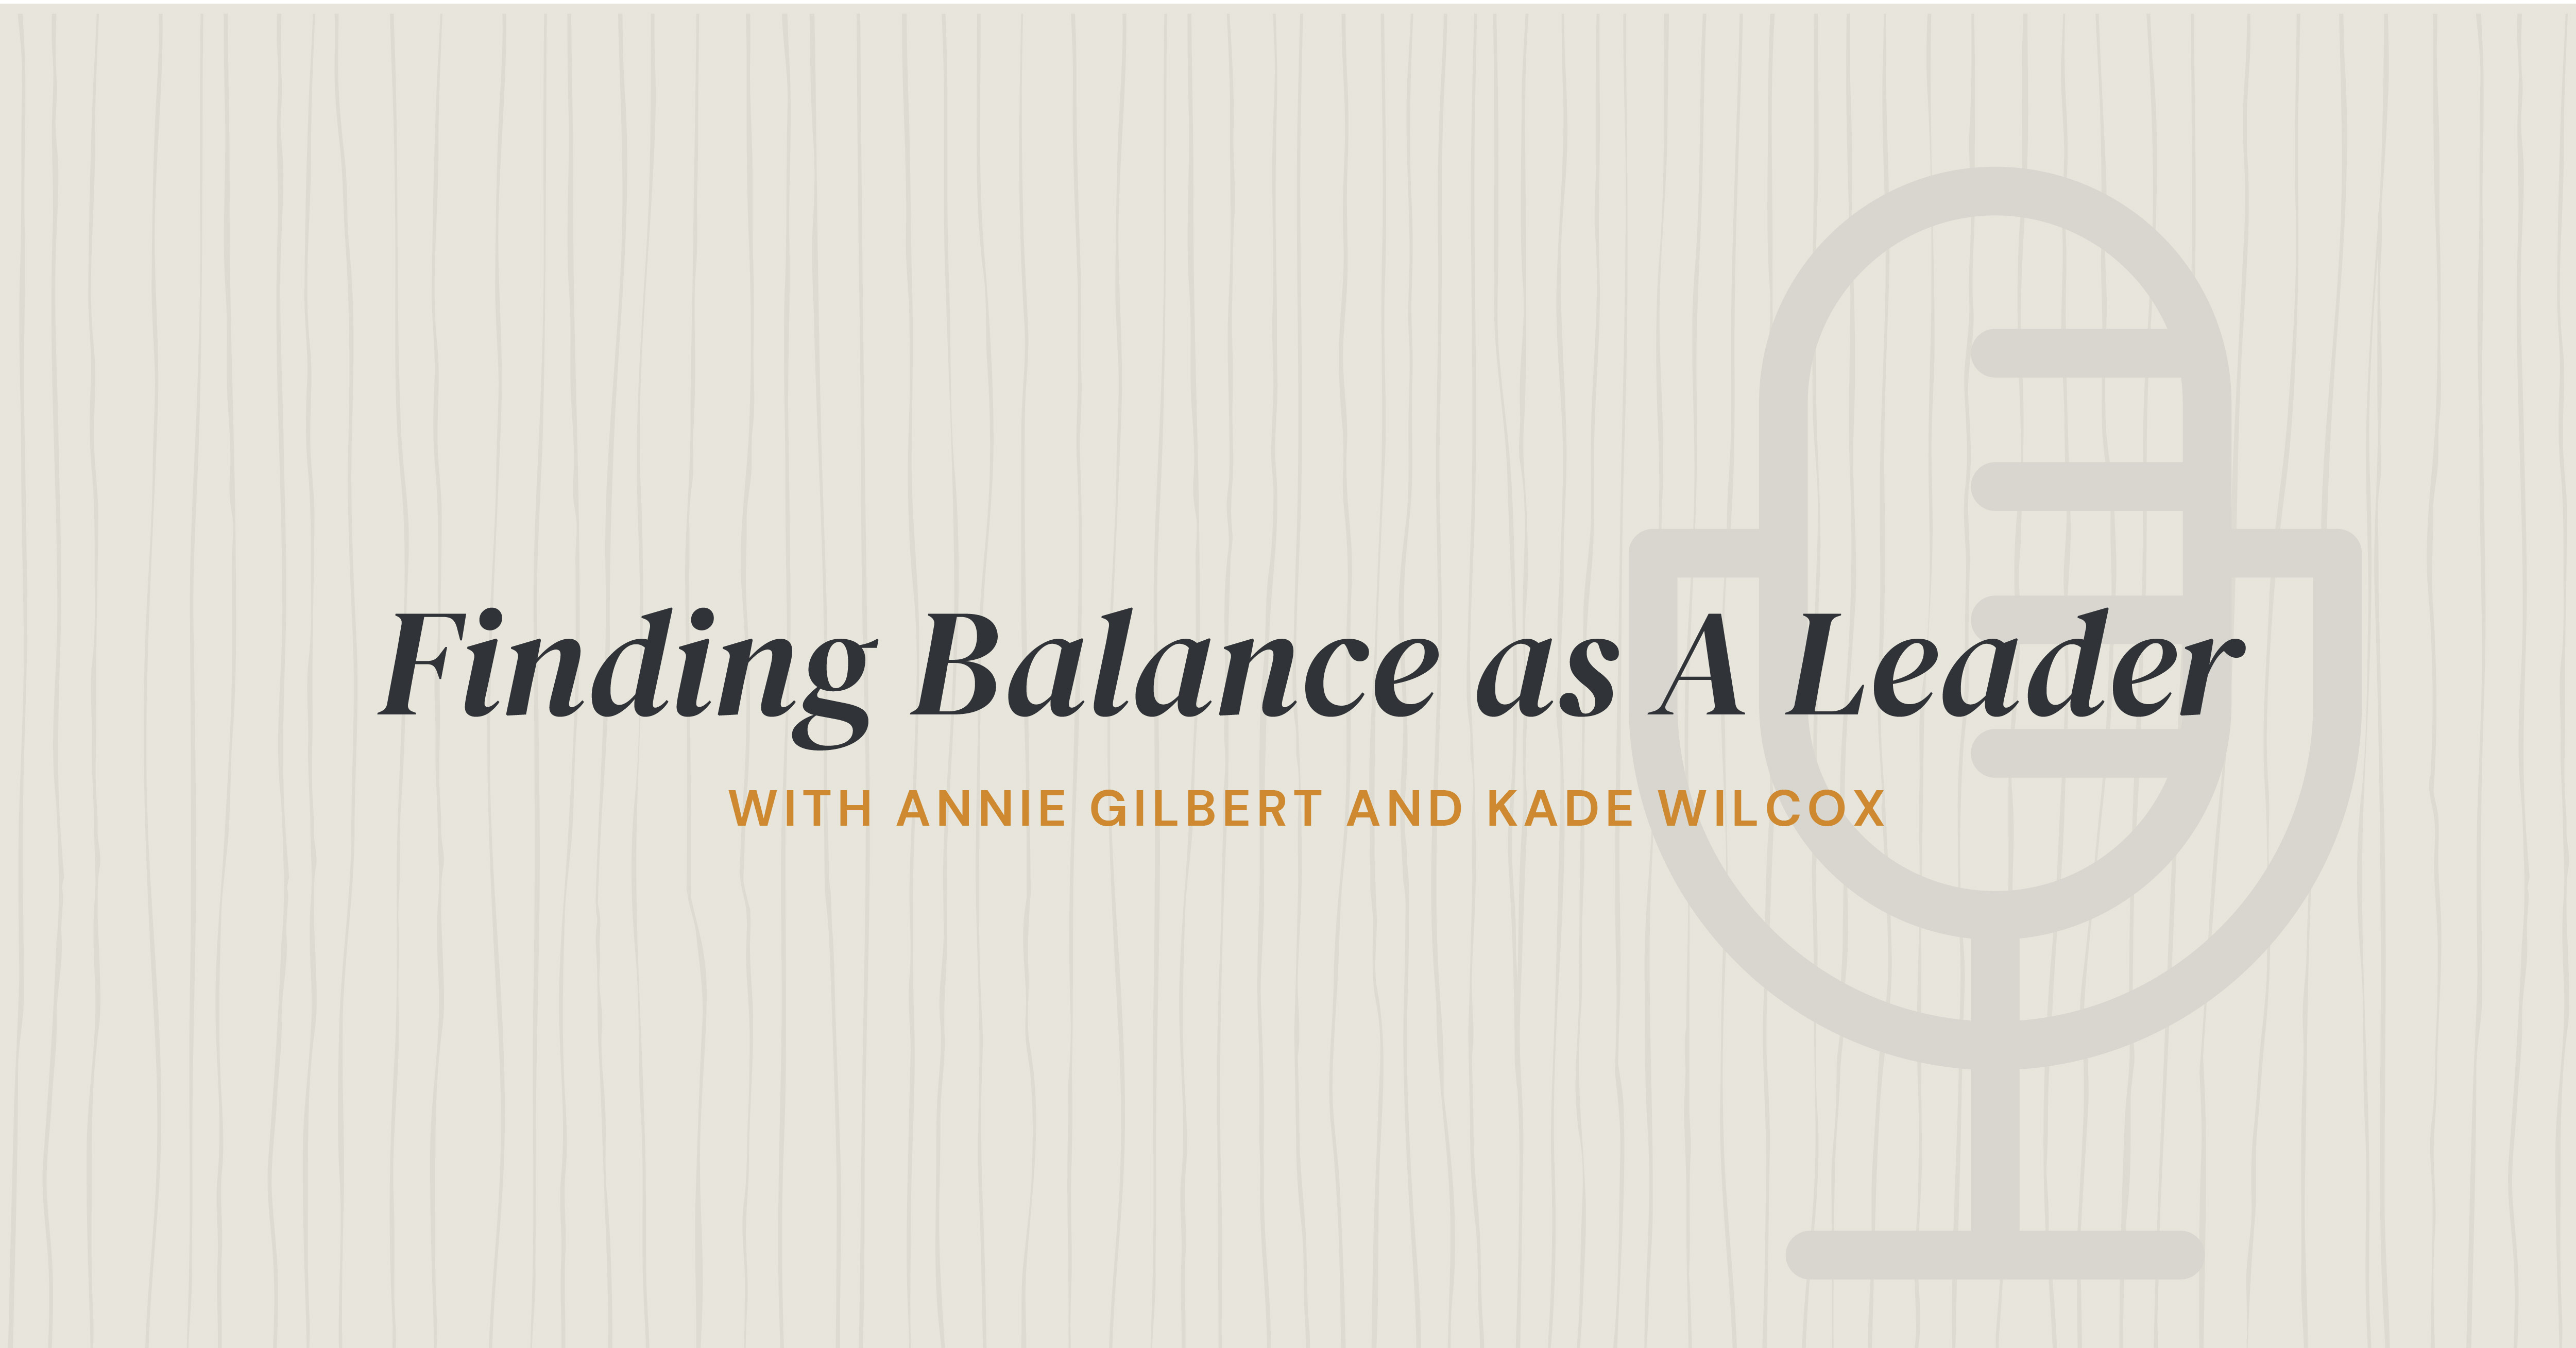 Finding Balance as A Leader with Annie Gilbert and Kade Wilcox